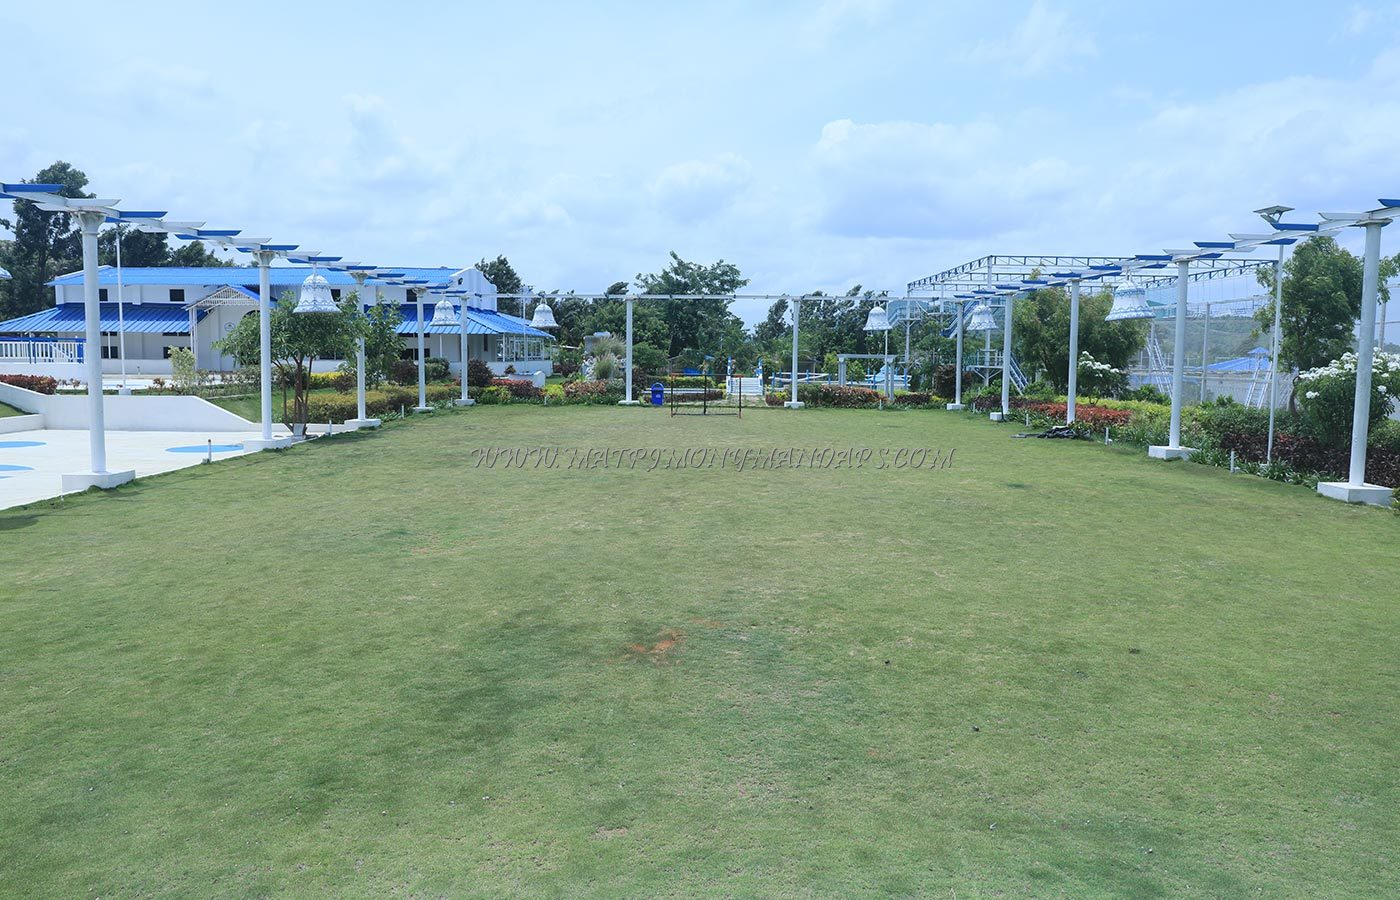 Find the availability of the Sky Blue Orchids Resort Poolside Lawn in kanakapura road, Bangalore and avail special offers